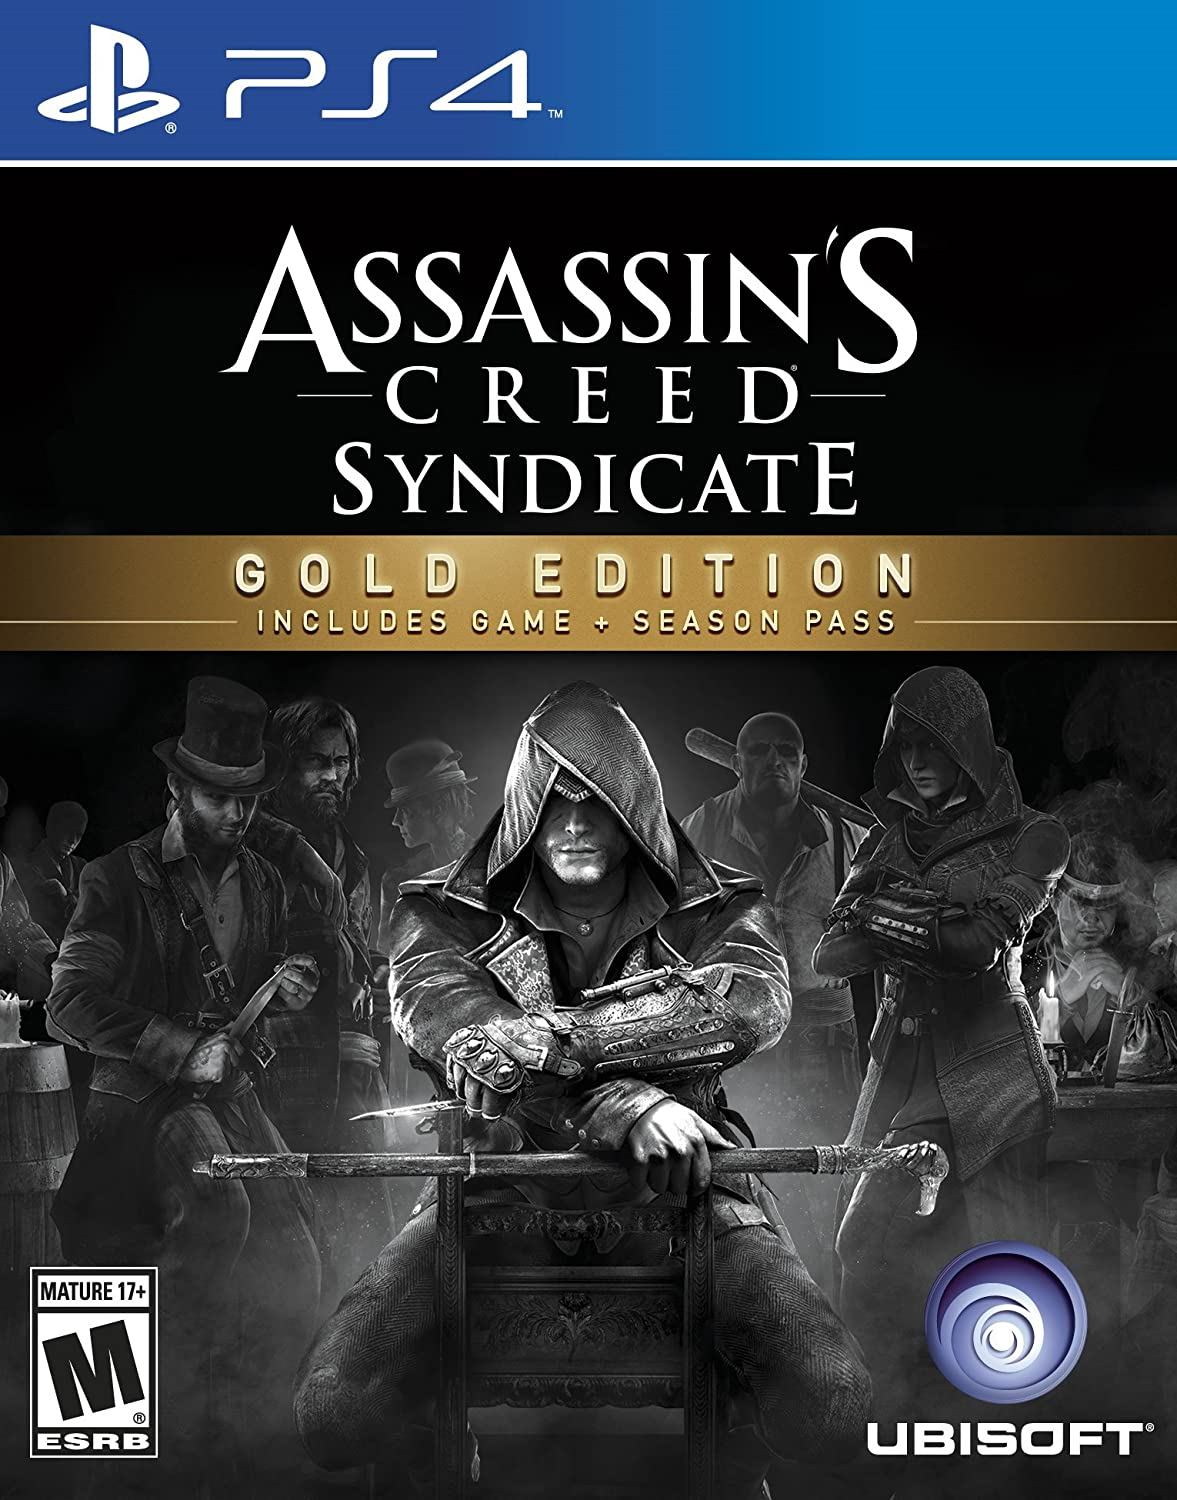 Amazon.com: Assassins Creed Syndicate - Gold Edition ...